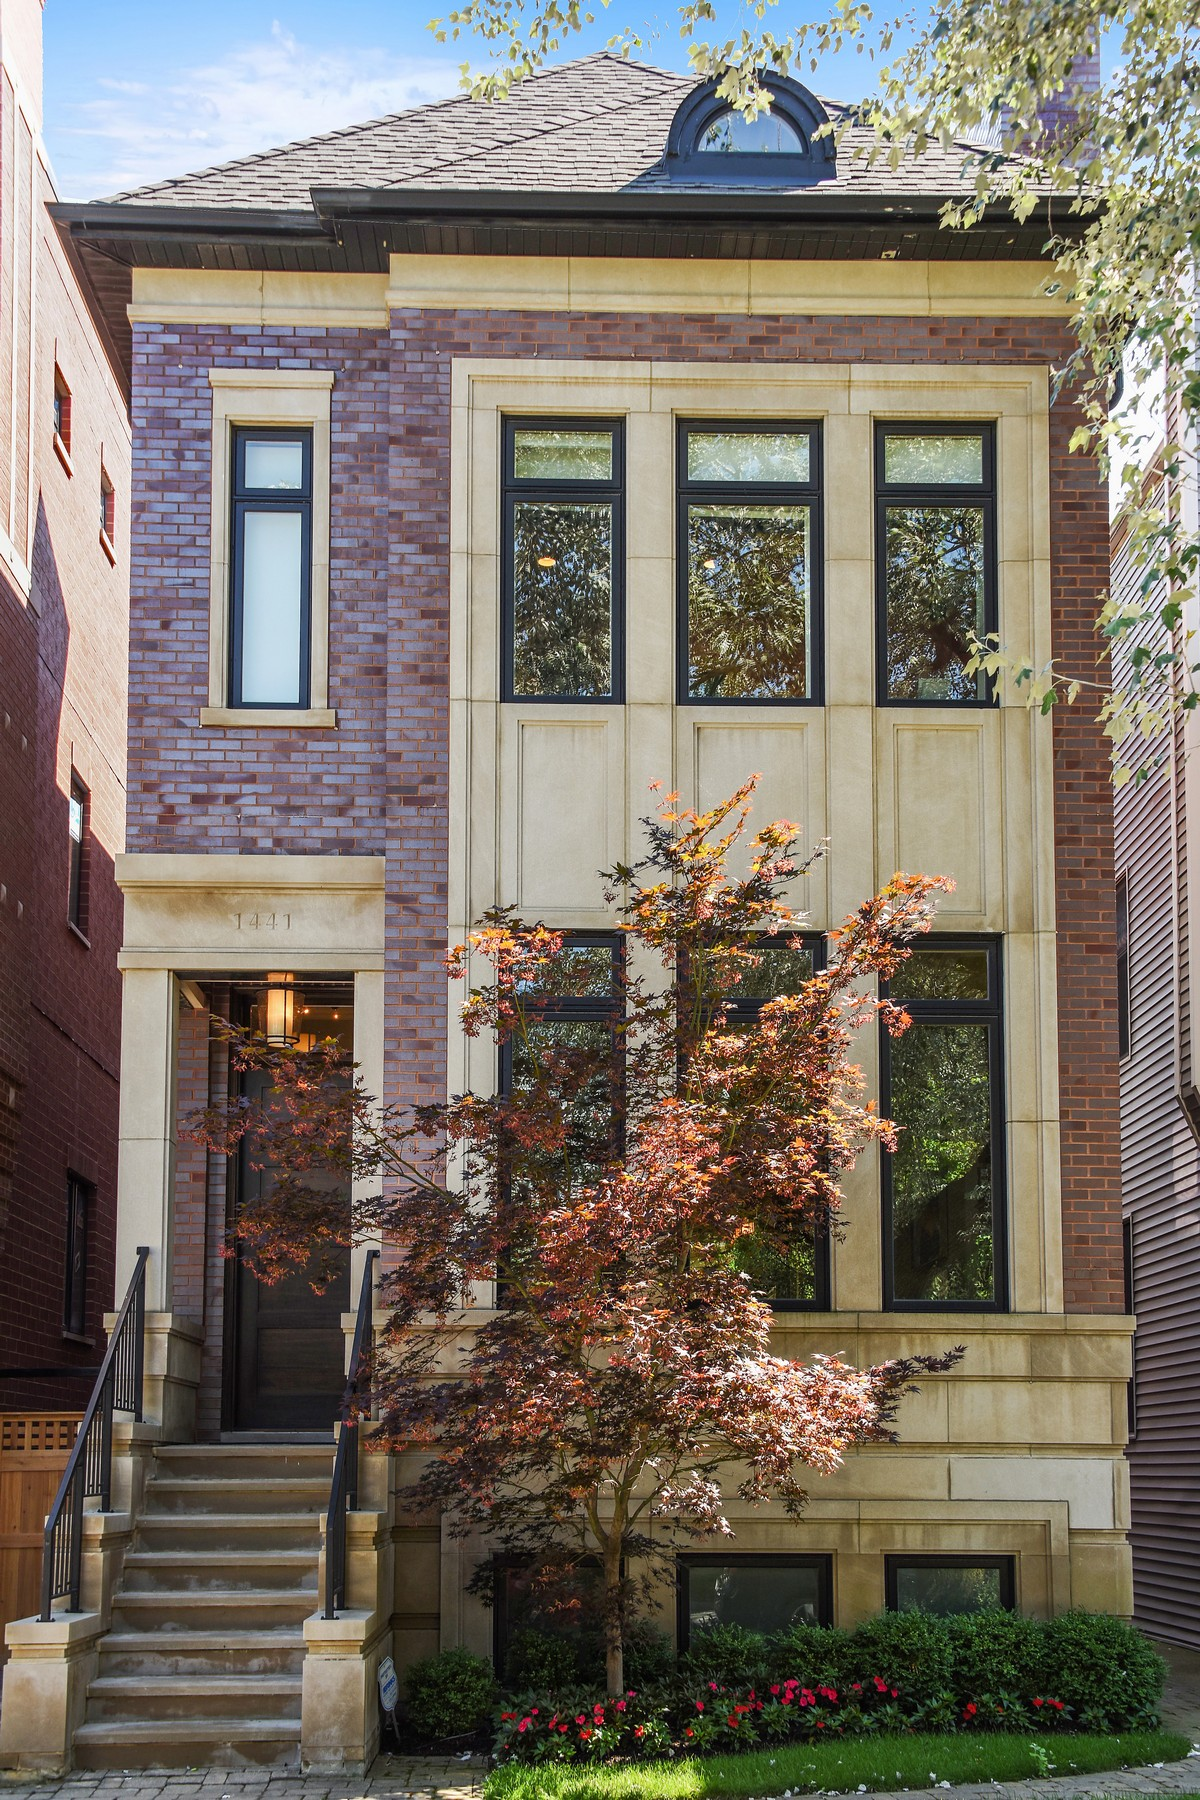 Single Family Home for Sale at Stunning Custom-Built Contemporary Home 1441 W Melrose Street Chicago, Illinois, 60657 United States